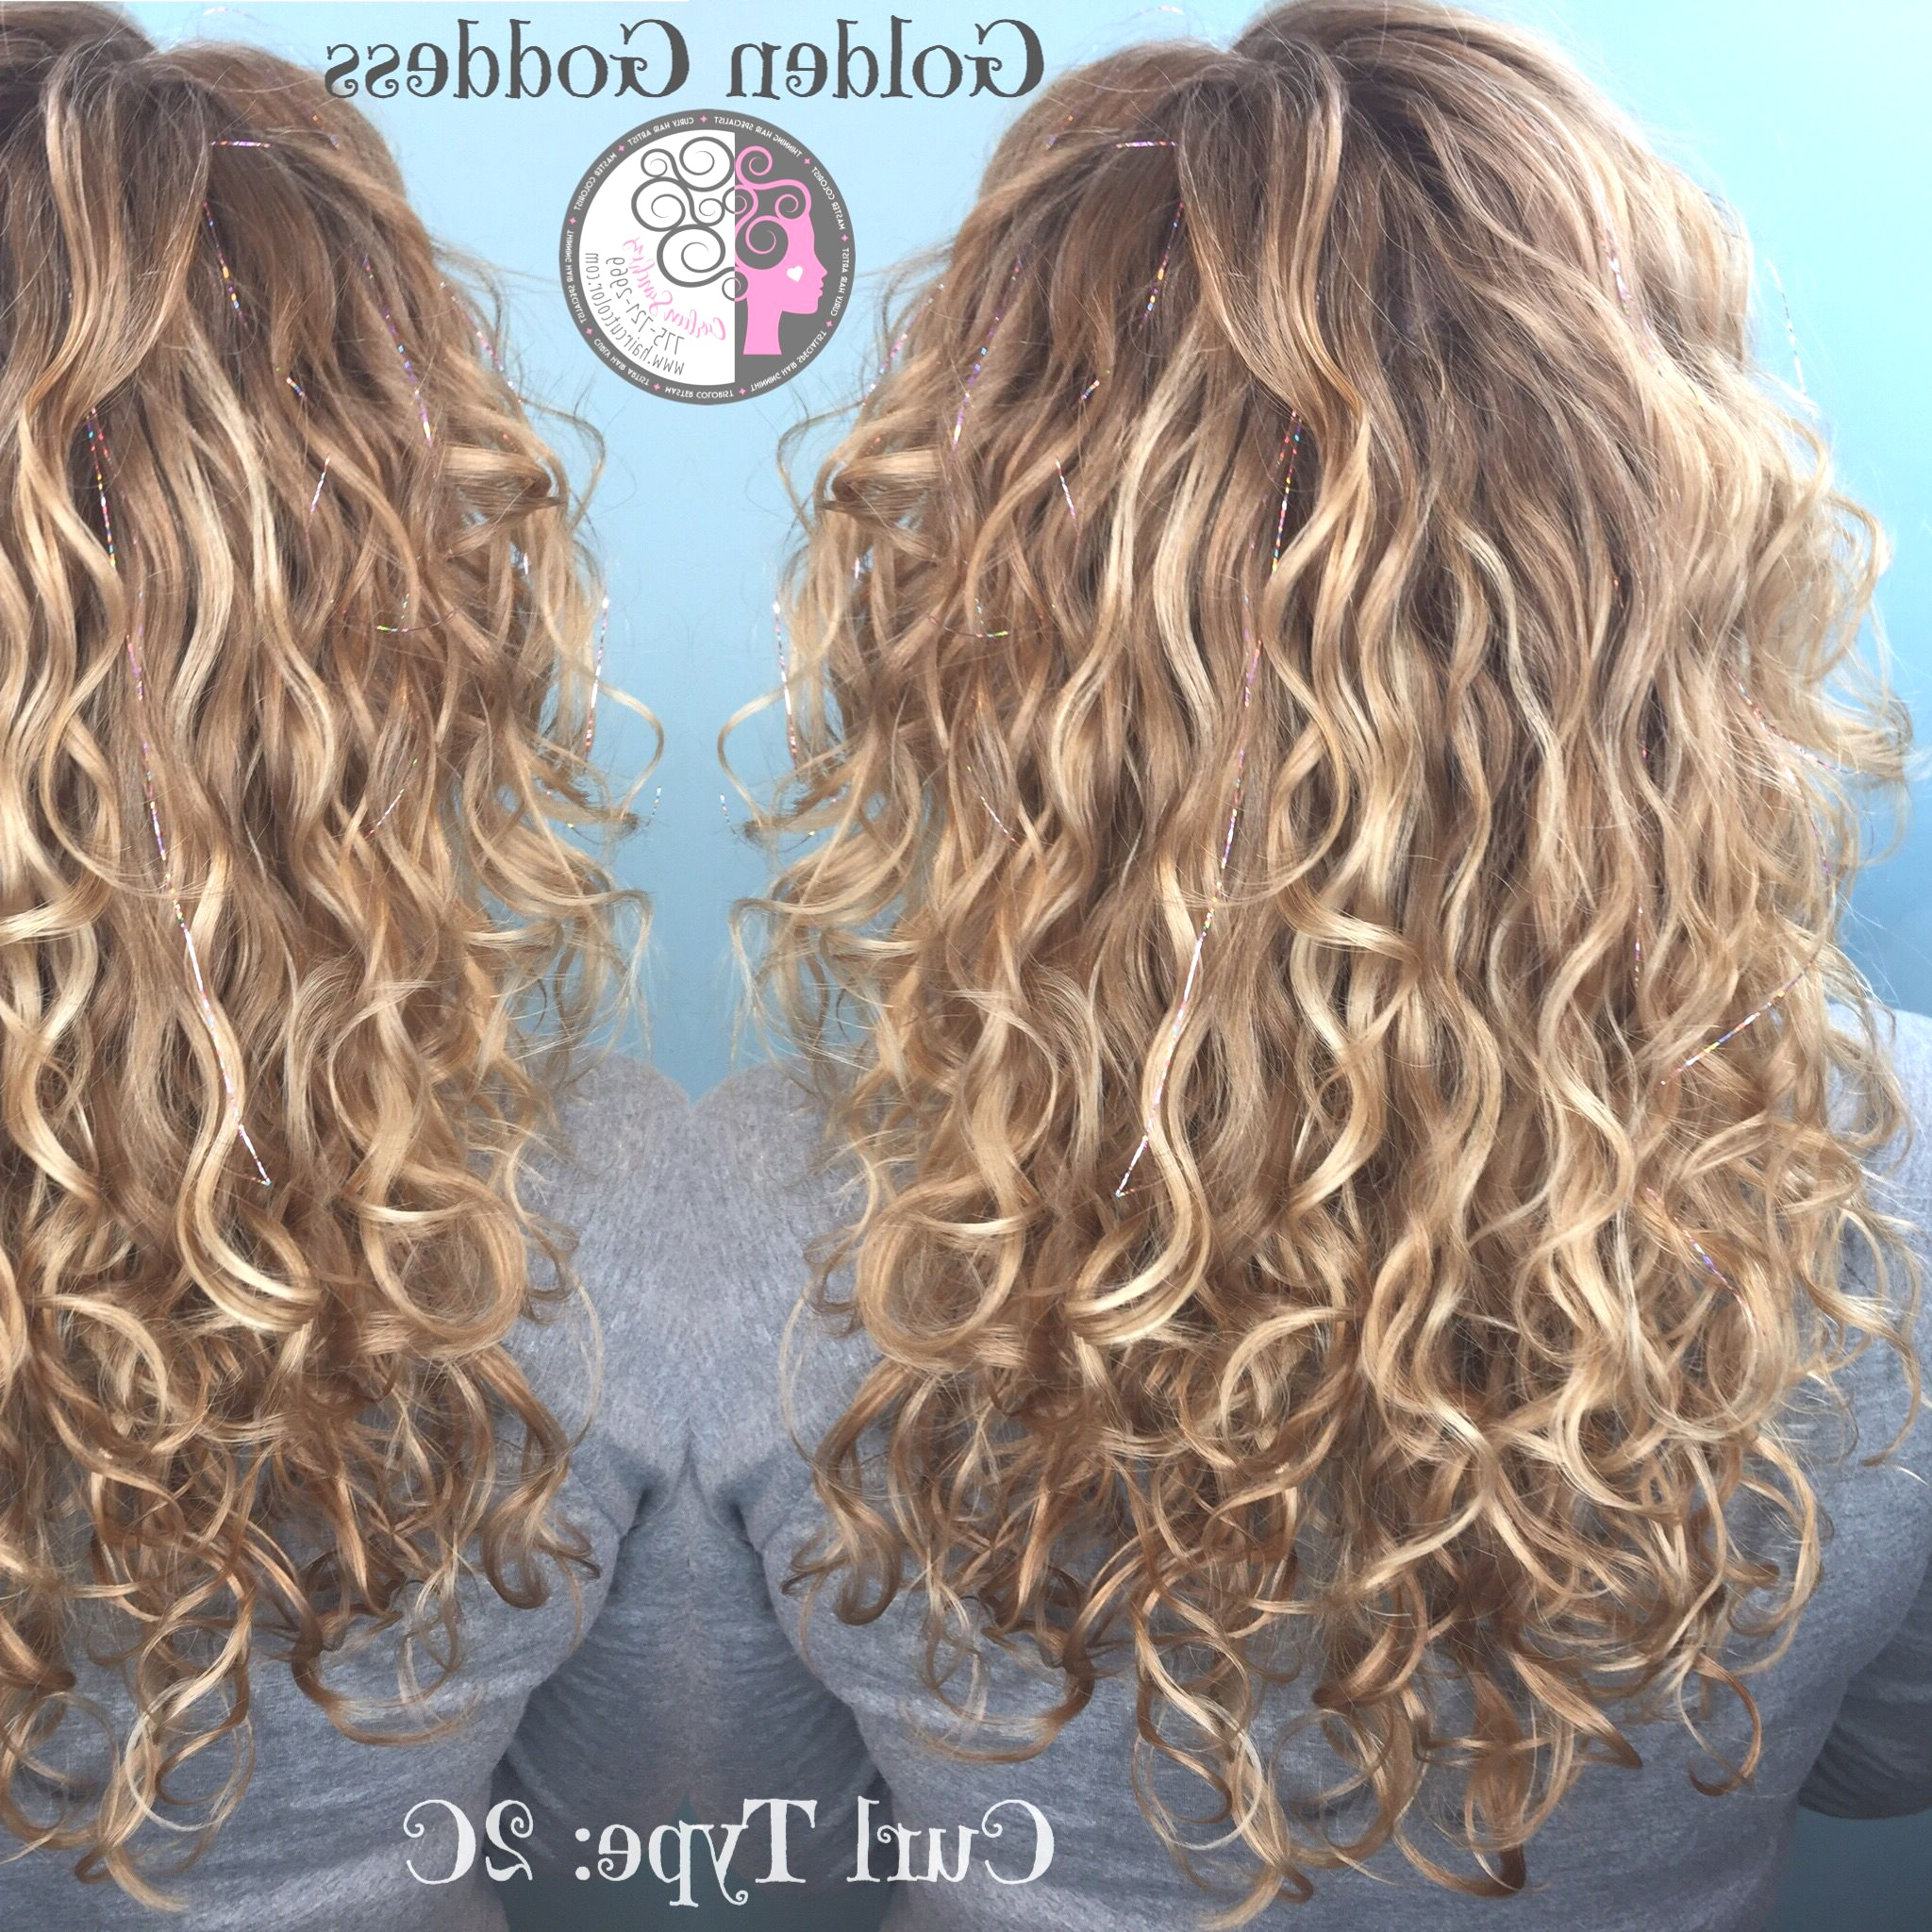 Hairstyles : Blonde Highlights Curly Hair Surprising Pertaining To Curls And Blonde Highlights Hairstyles (View 11 of 20)